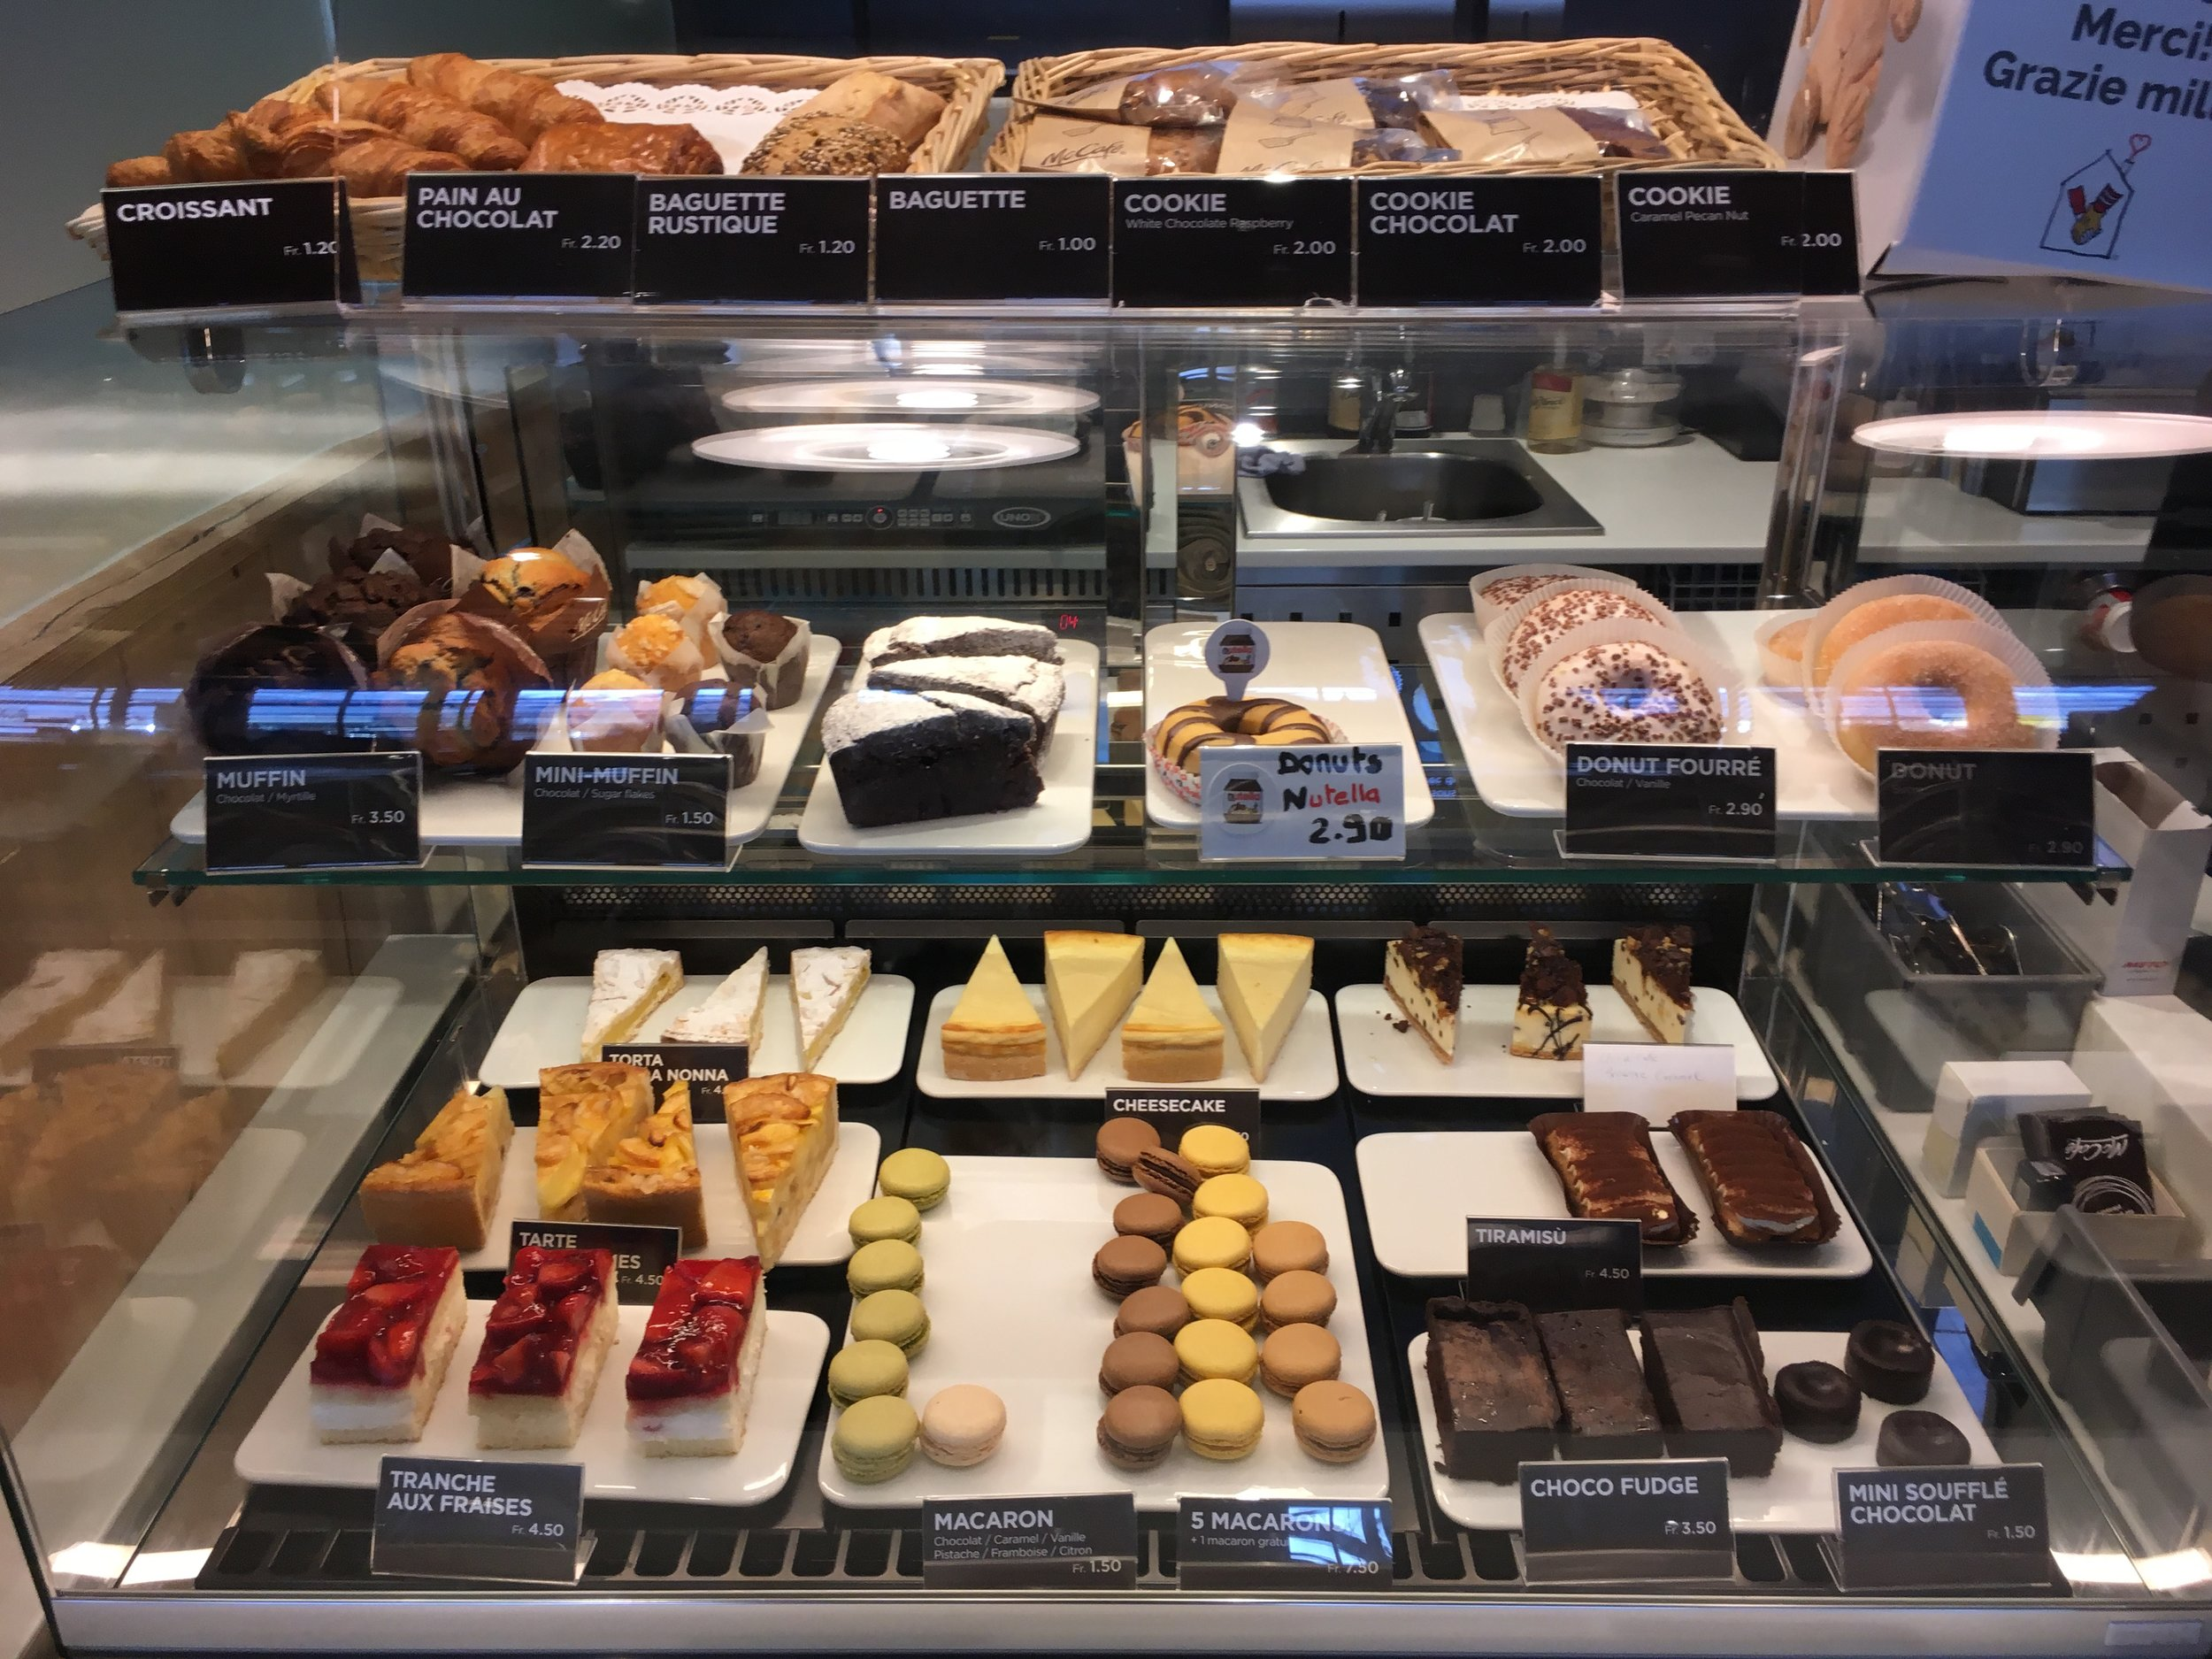 The deserts in our local McDonald's, macarons anyone?